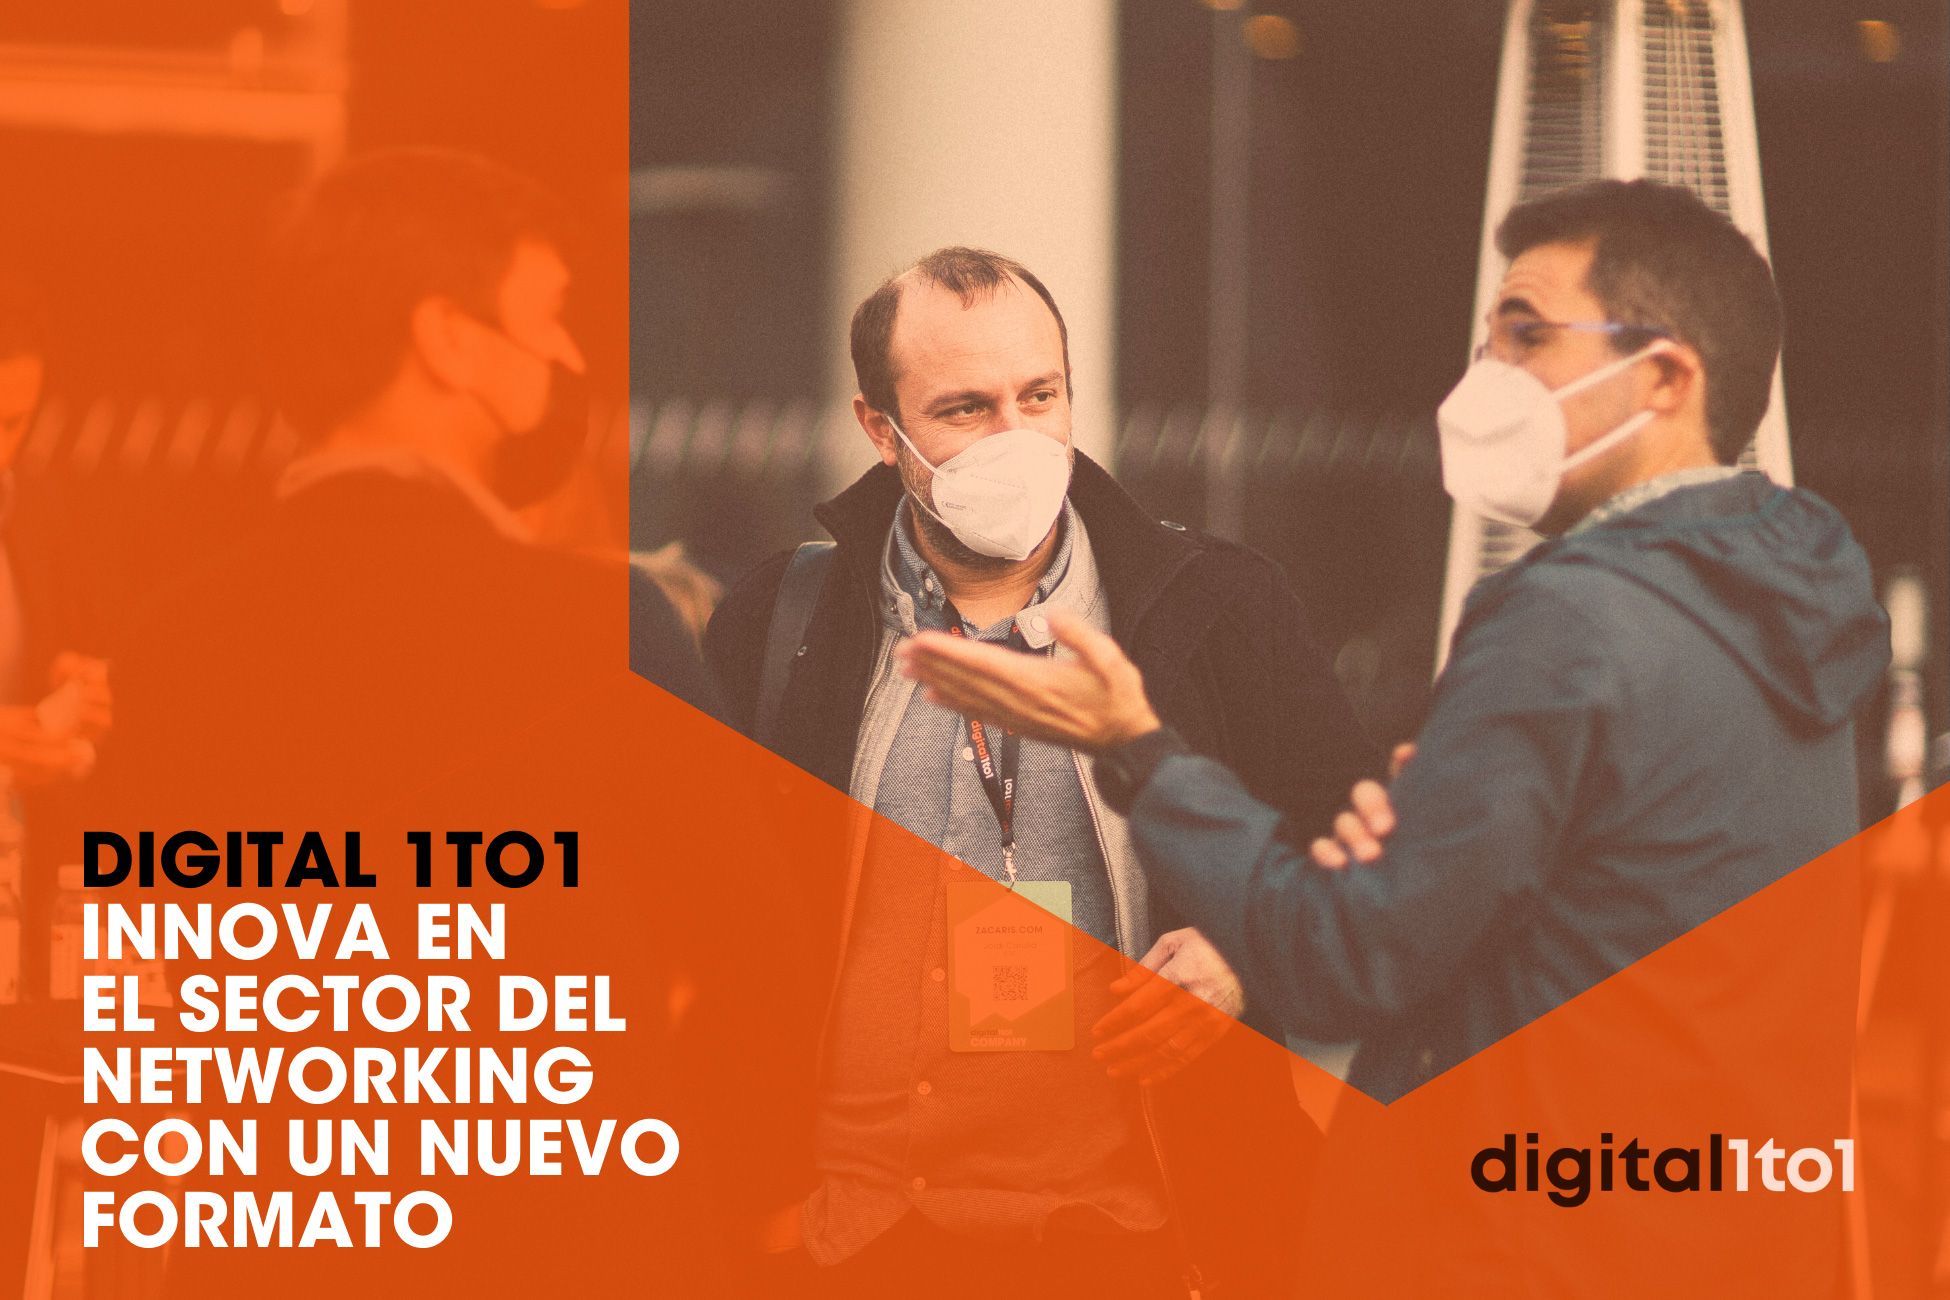 Digital 1to1 innova en el sector del networking con un nuevo formato